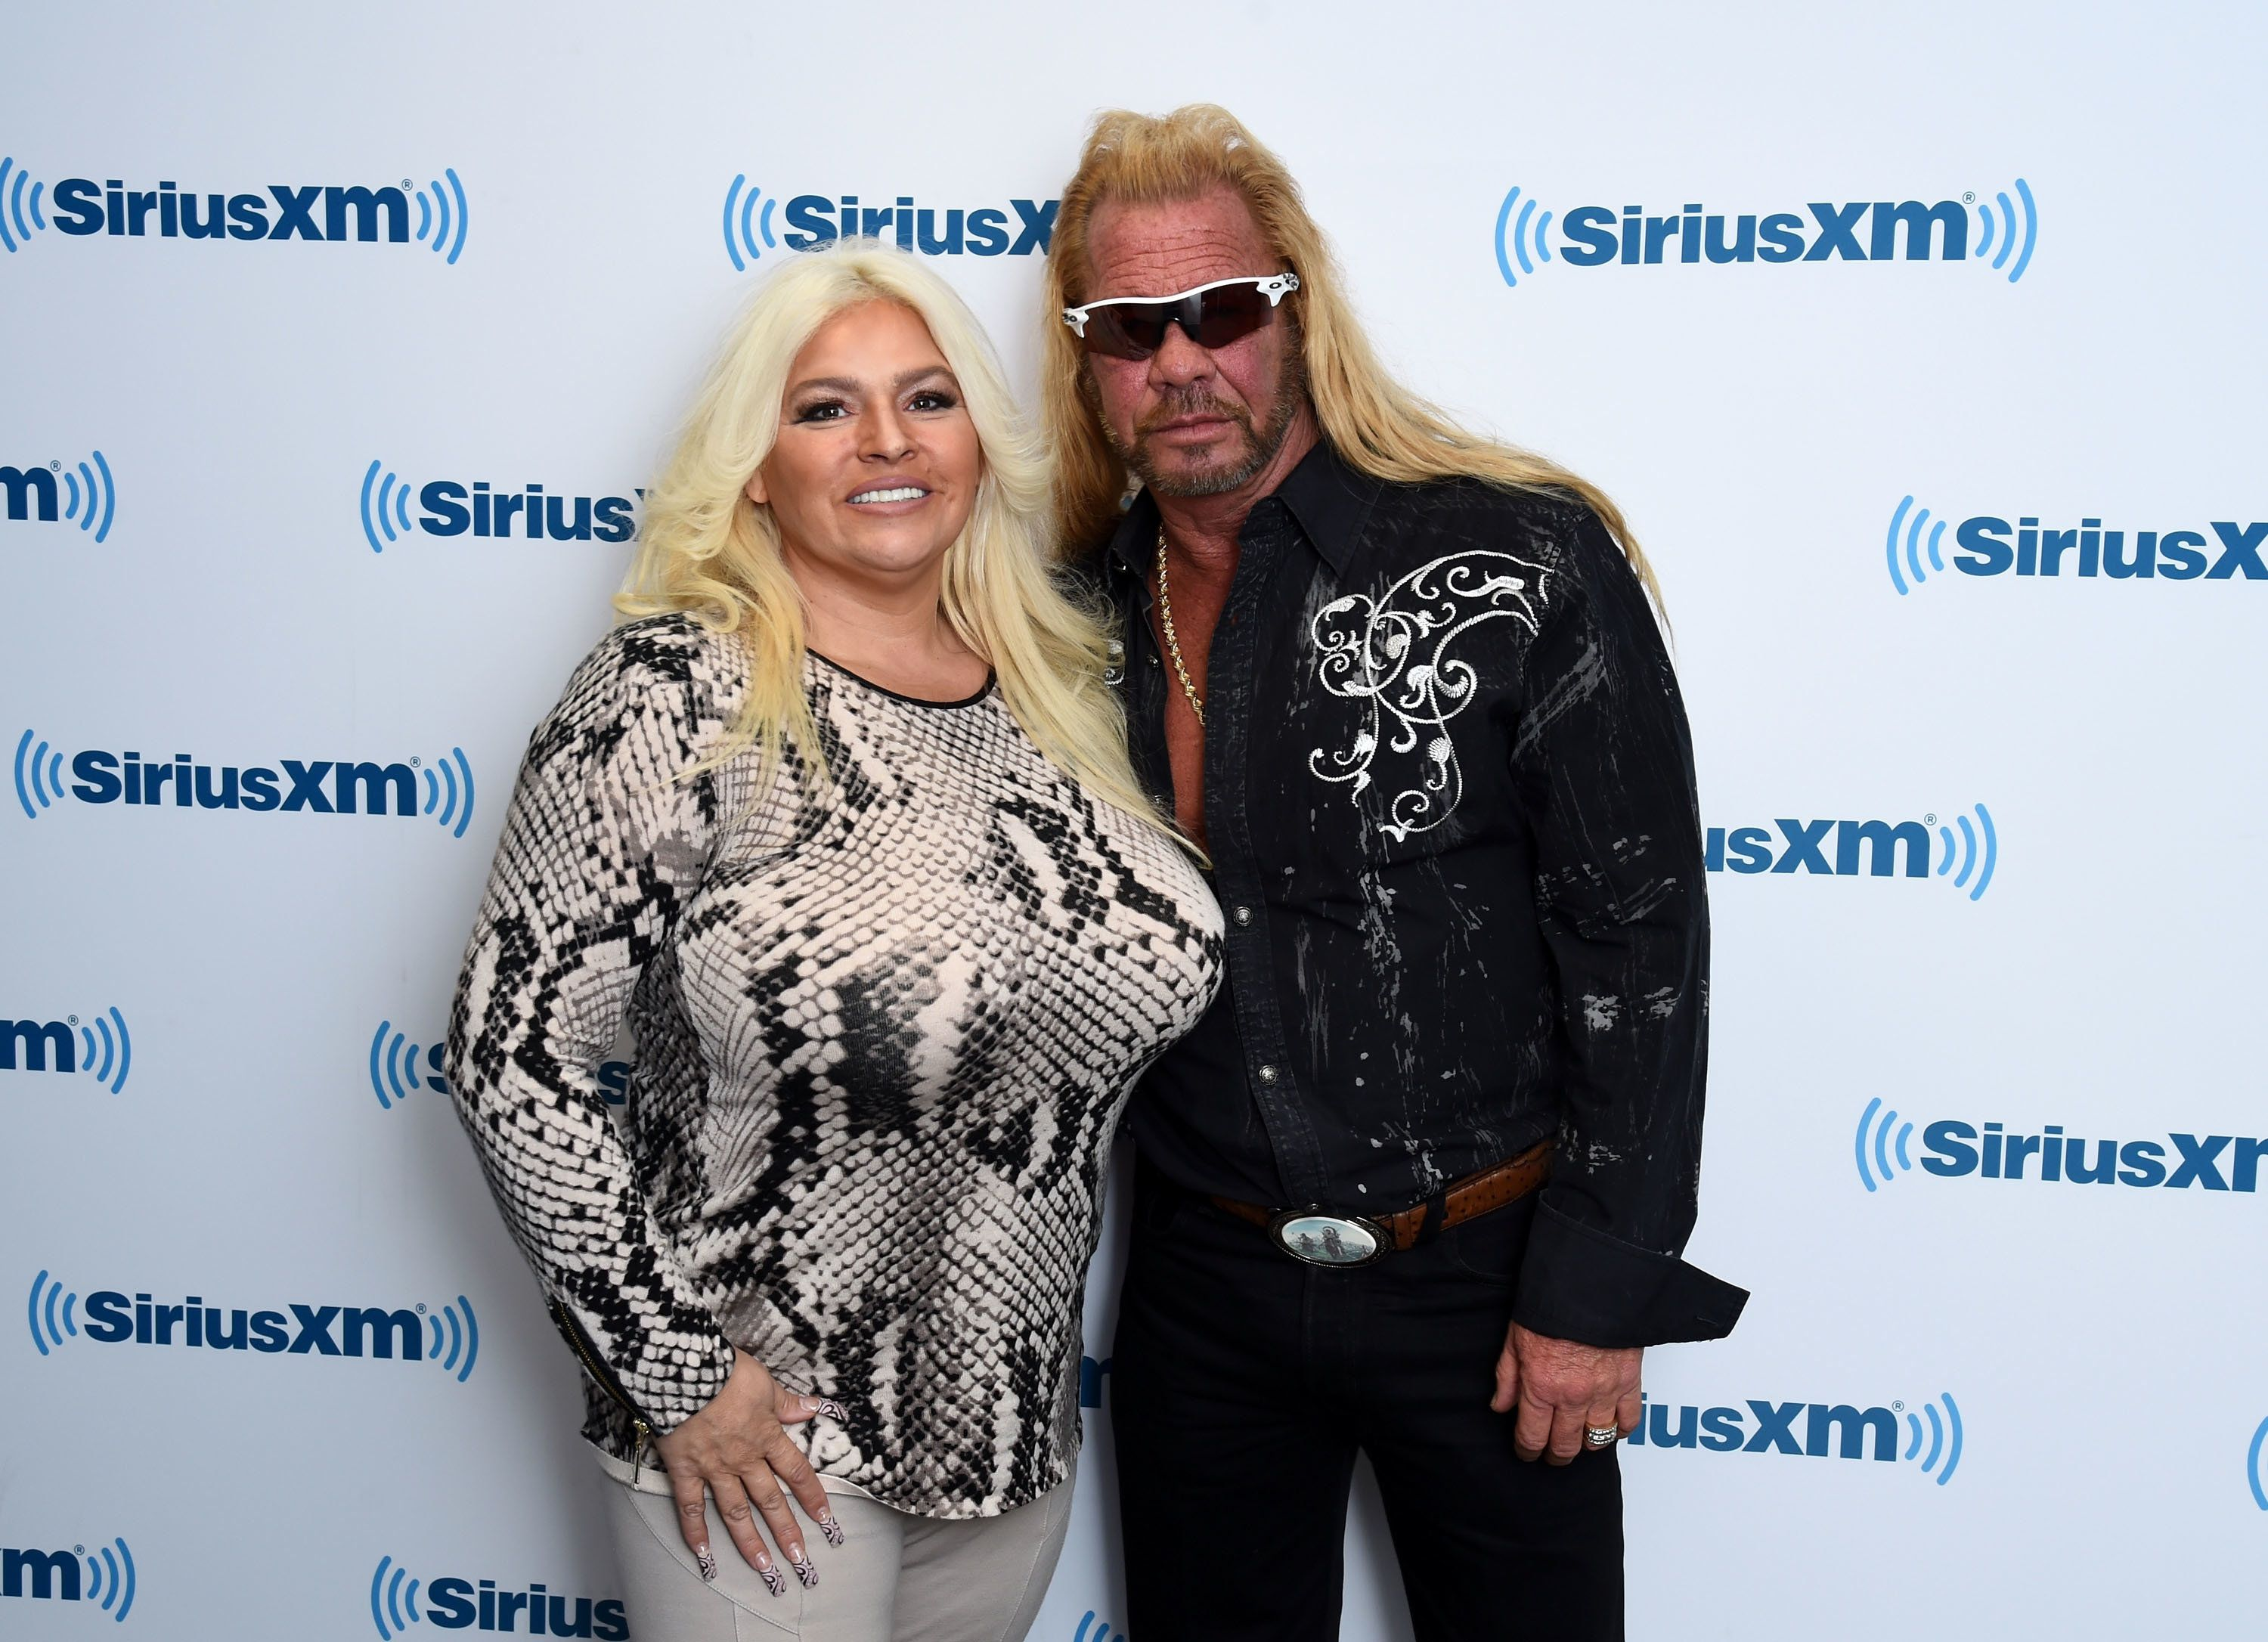 "Duane ""Dog the Bounty Hunter"" Chapman and his wife, Beth, visit the SiriusXM studios in New York City, April 24, 2015."